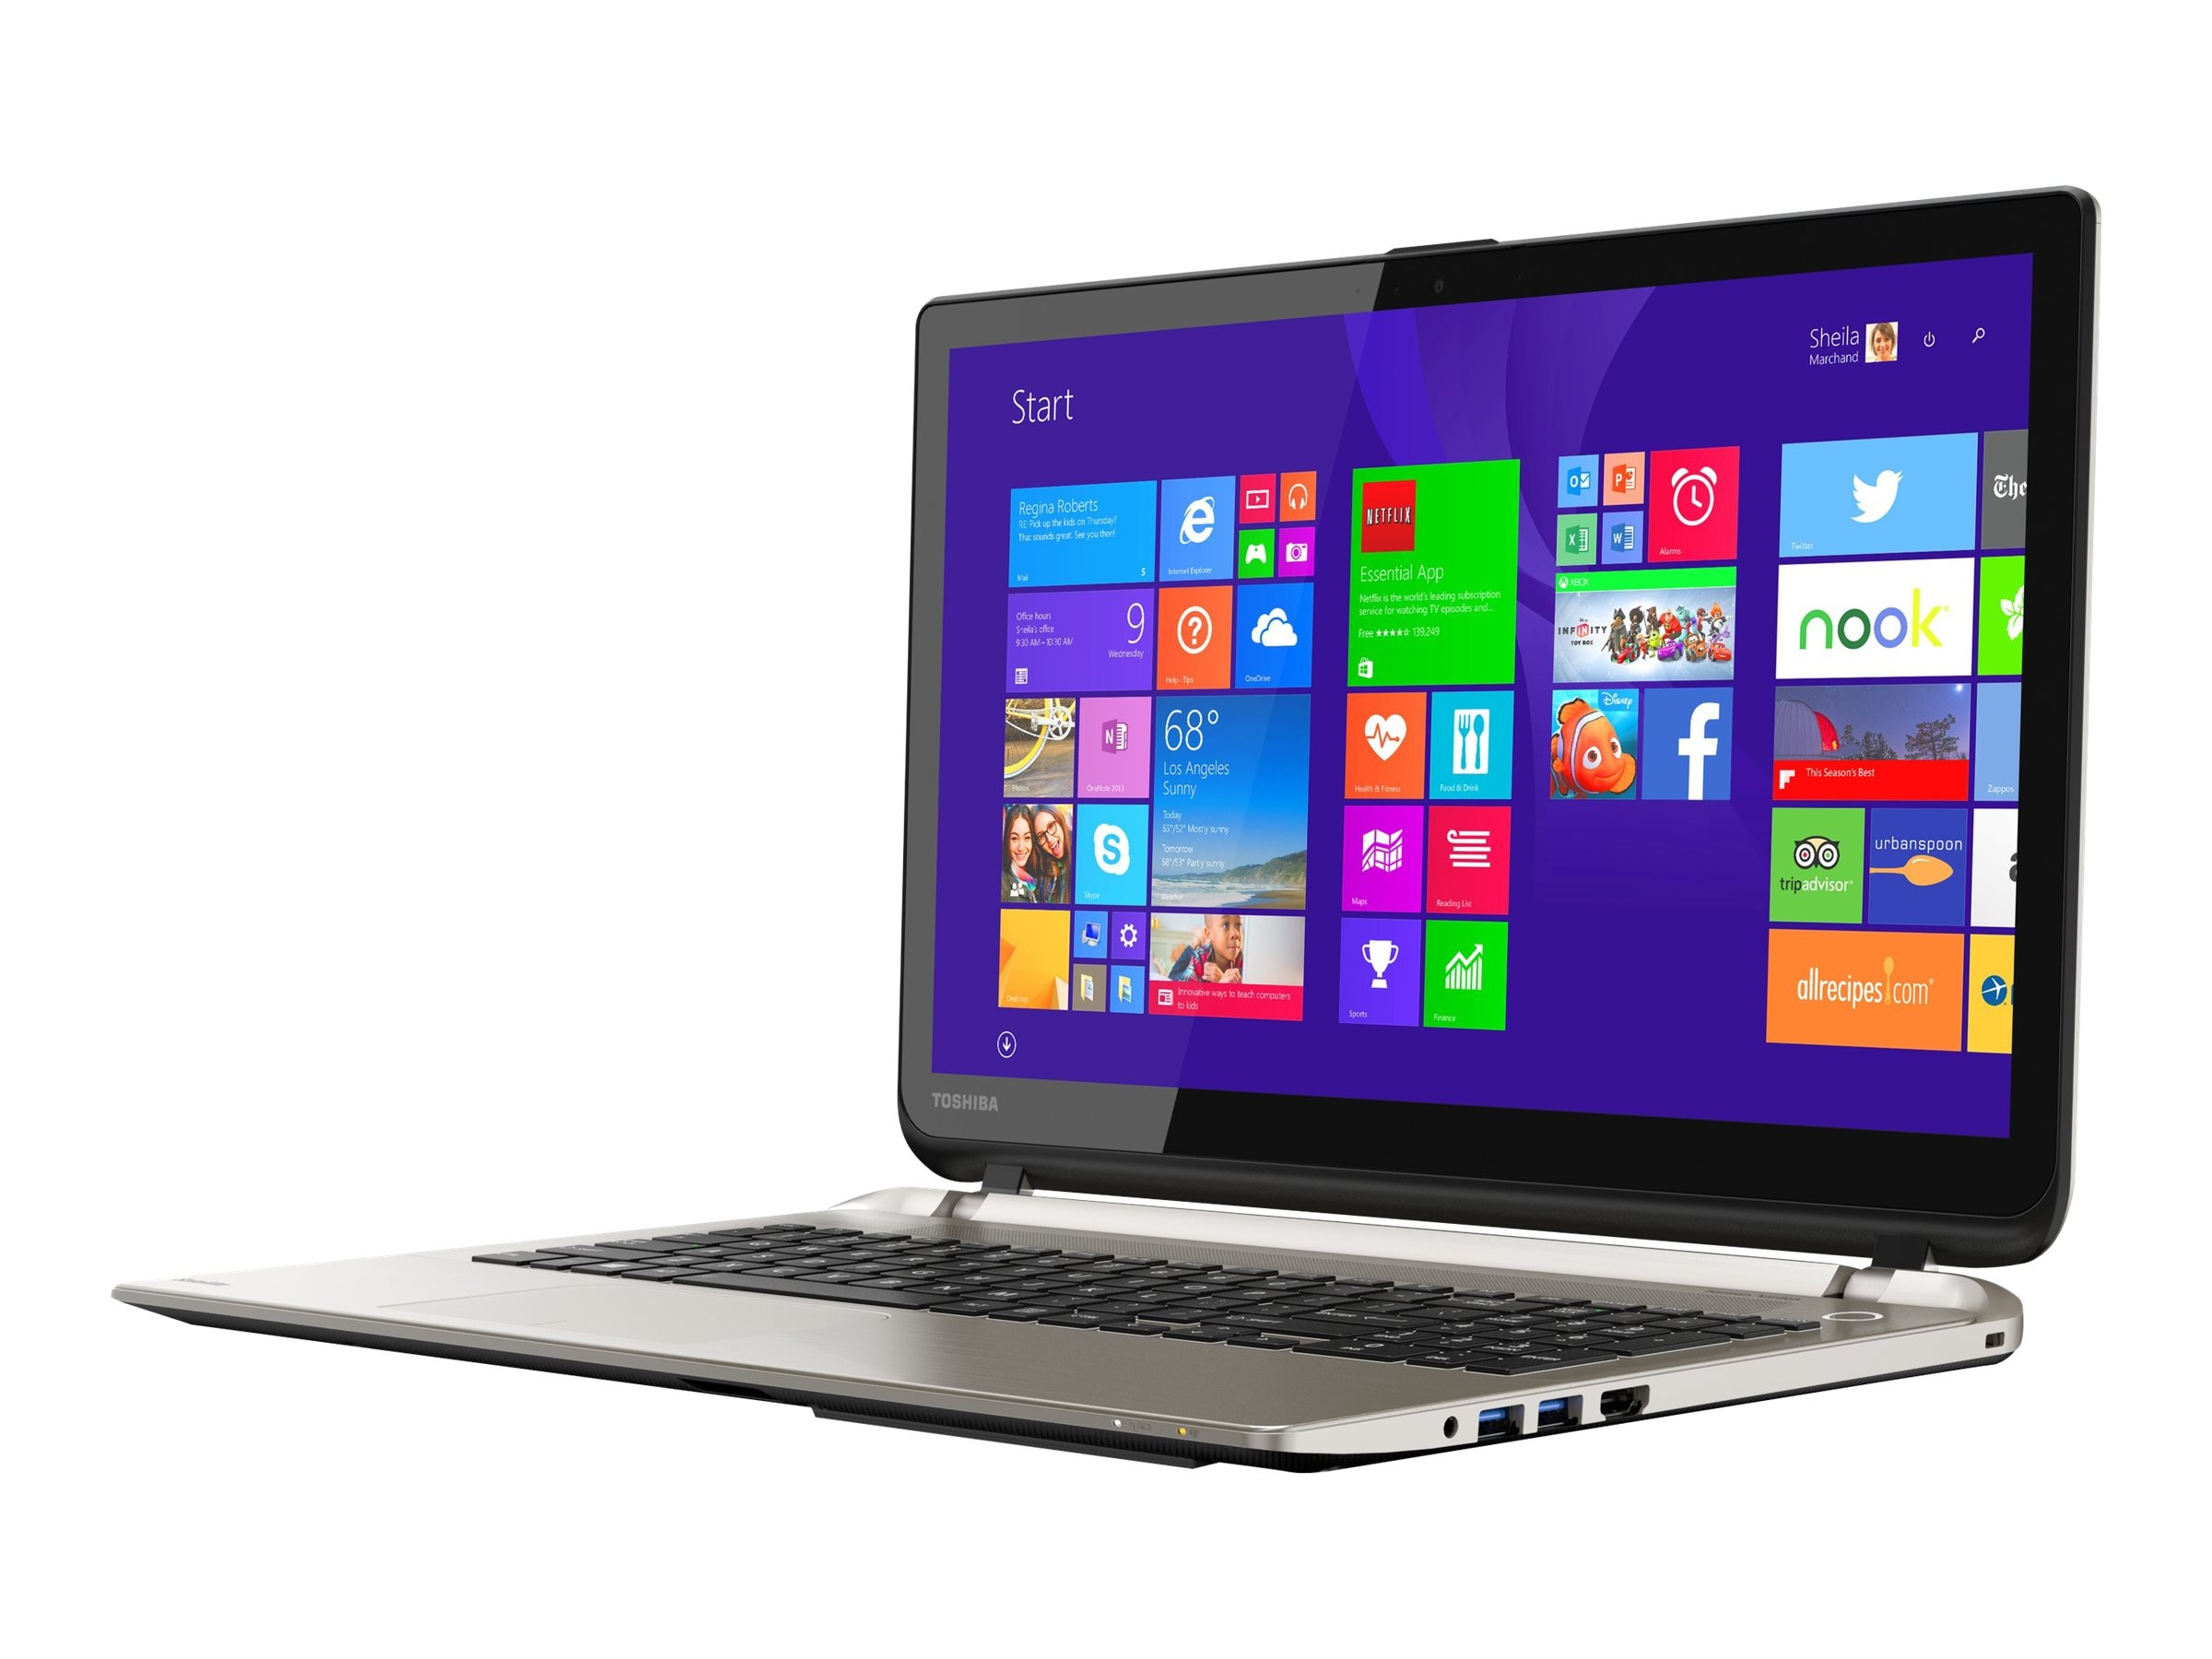 Toshiba Satellite S55T-C5250-4K Core i7-4720HQ 2.6GHz 12GB 1TB DVD SM ac GNIC BT WC 4C 15.6 4K MT W10H, PSPTLU-00C006, 22521801, Notebooks